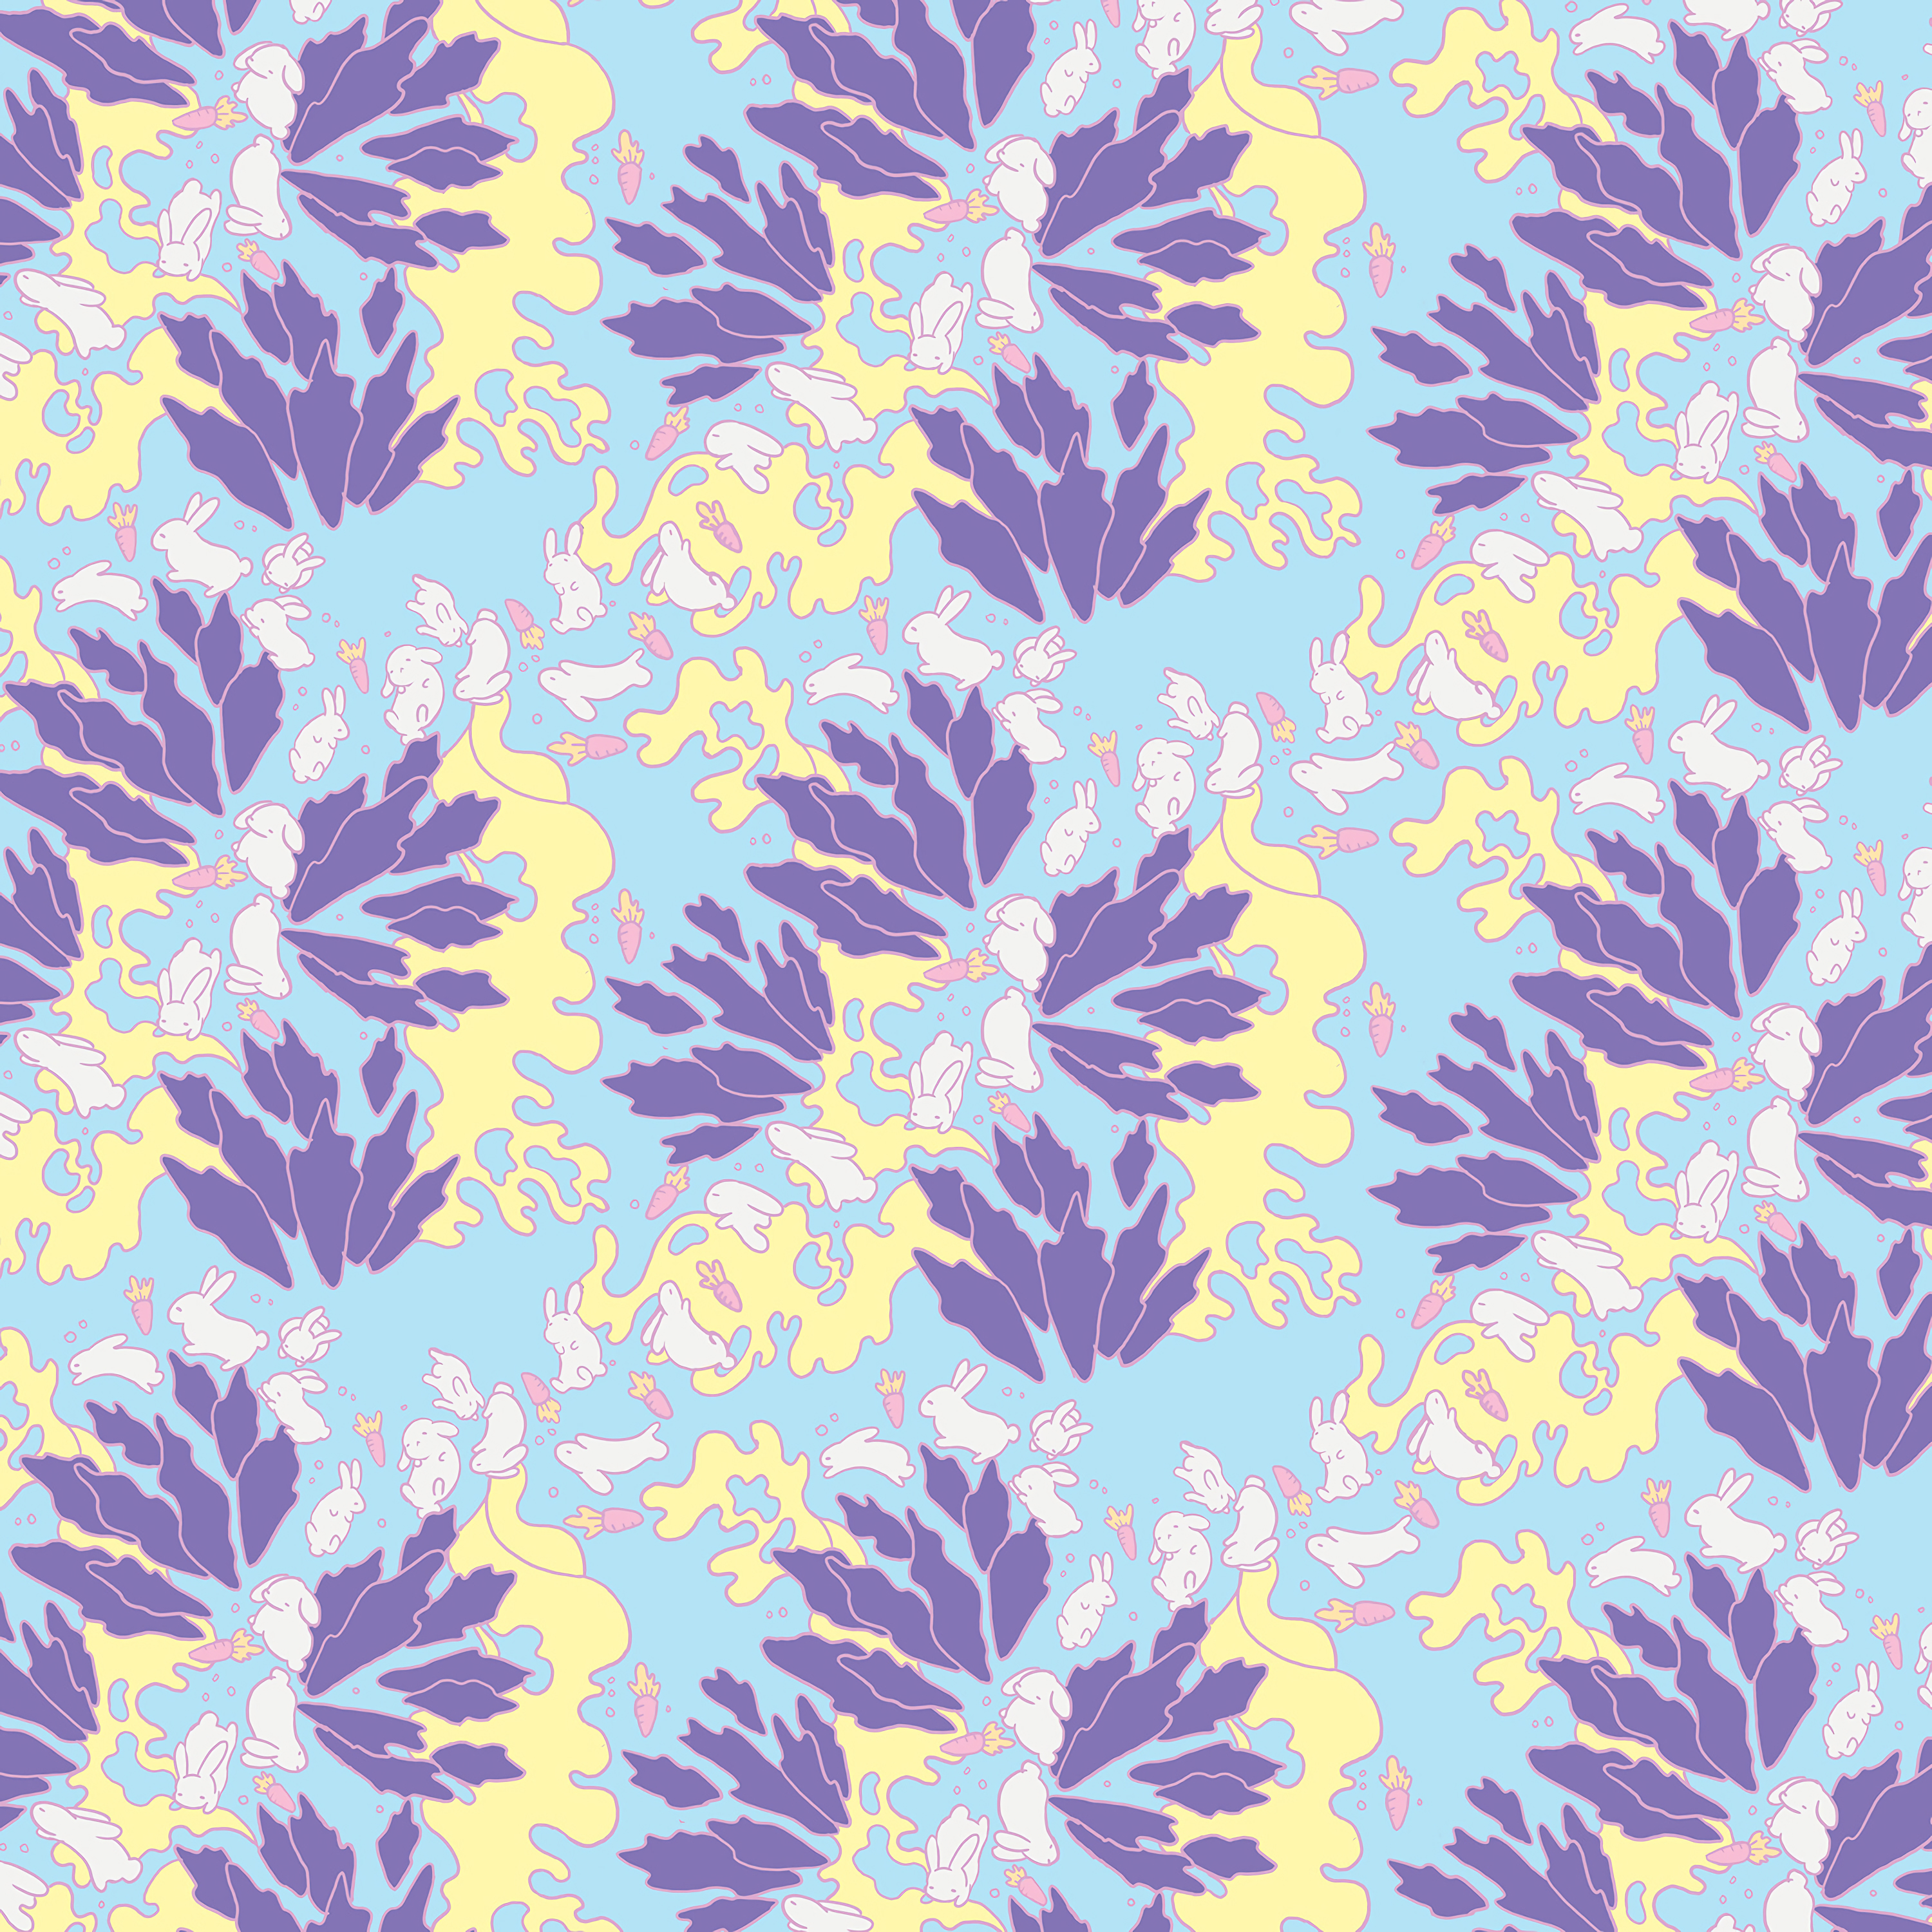 125076 download wallpaper Leaves, Rabbits, Multicolored, Motley, Pattern, Texture, Textures, Carrot screensavers and pictures for free